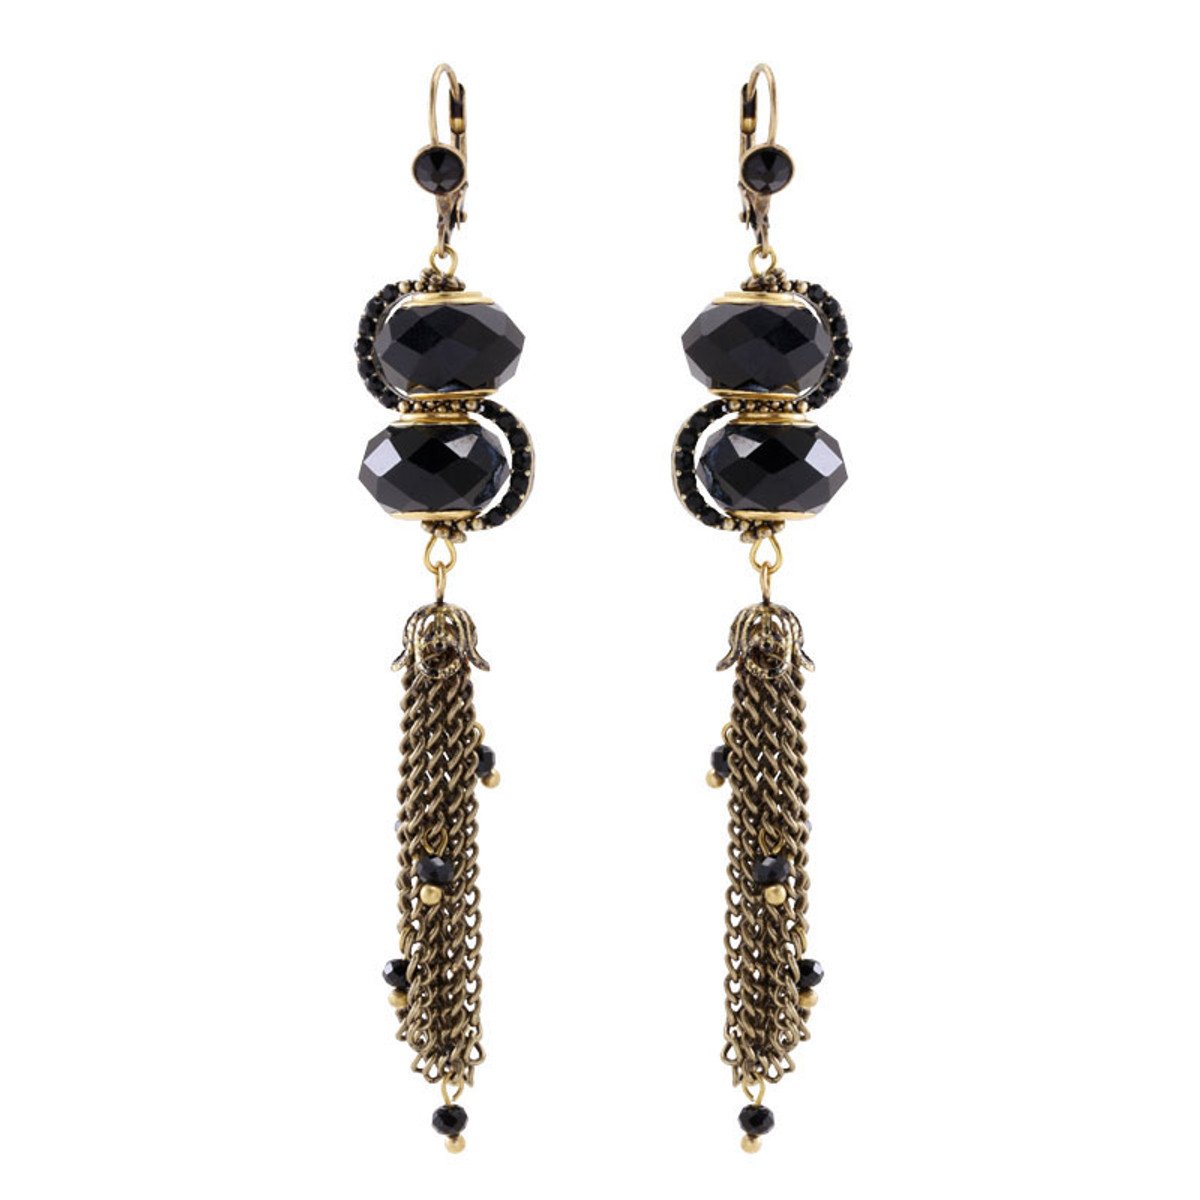 Michal Negrin Around the World Earrings - Multi Color